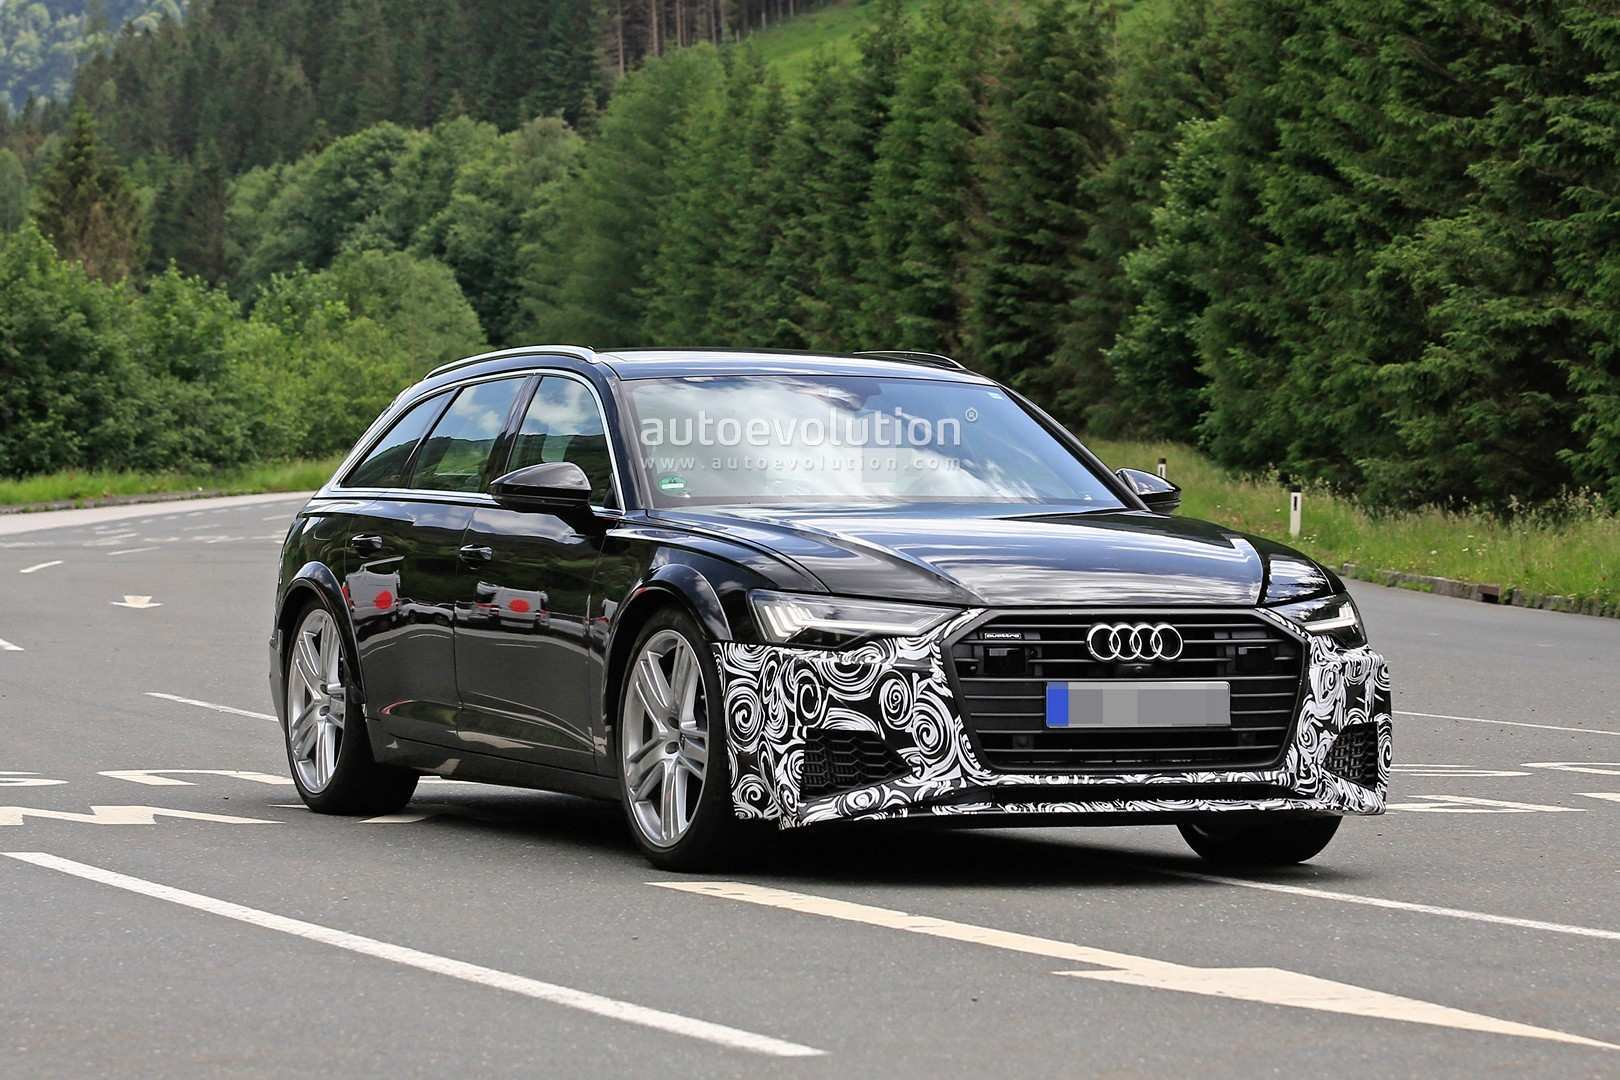 31 Great 2020 Audi A6 Wagon New Concept for 2020 Audi A6 Wagon